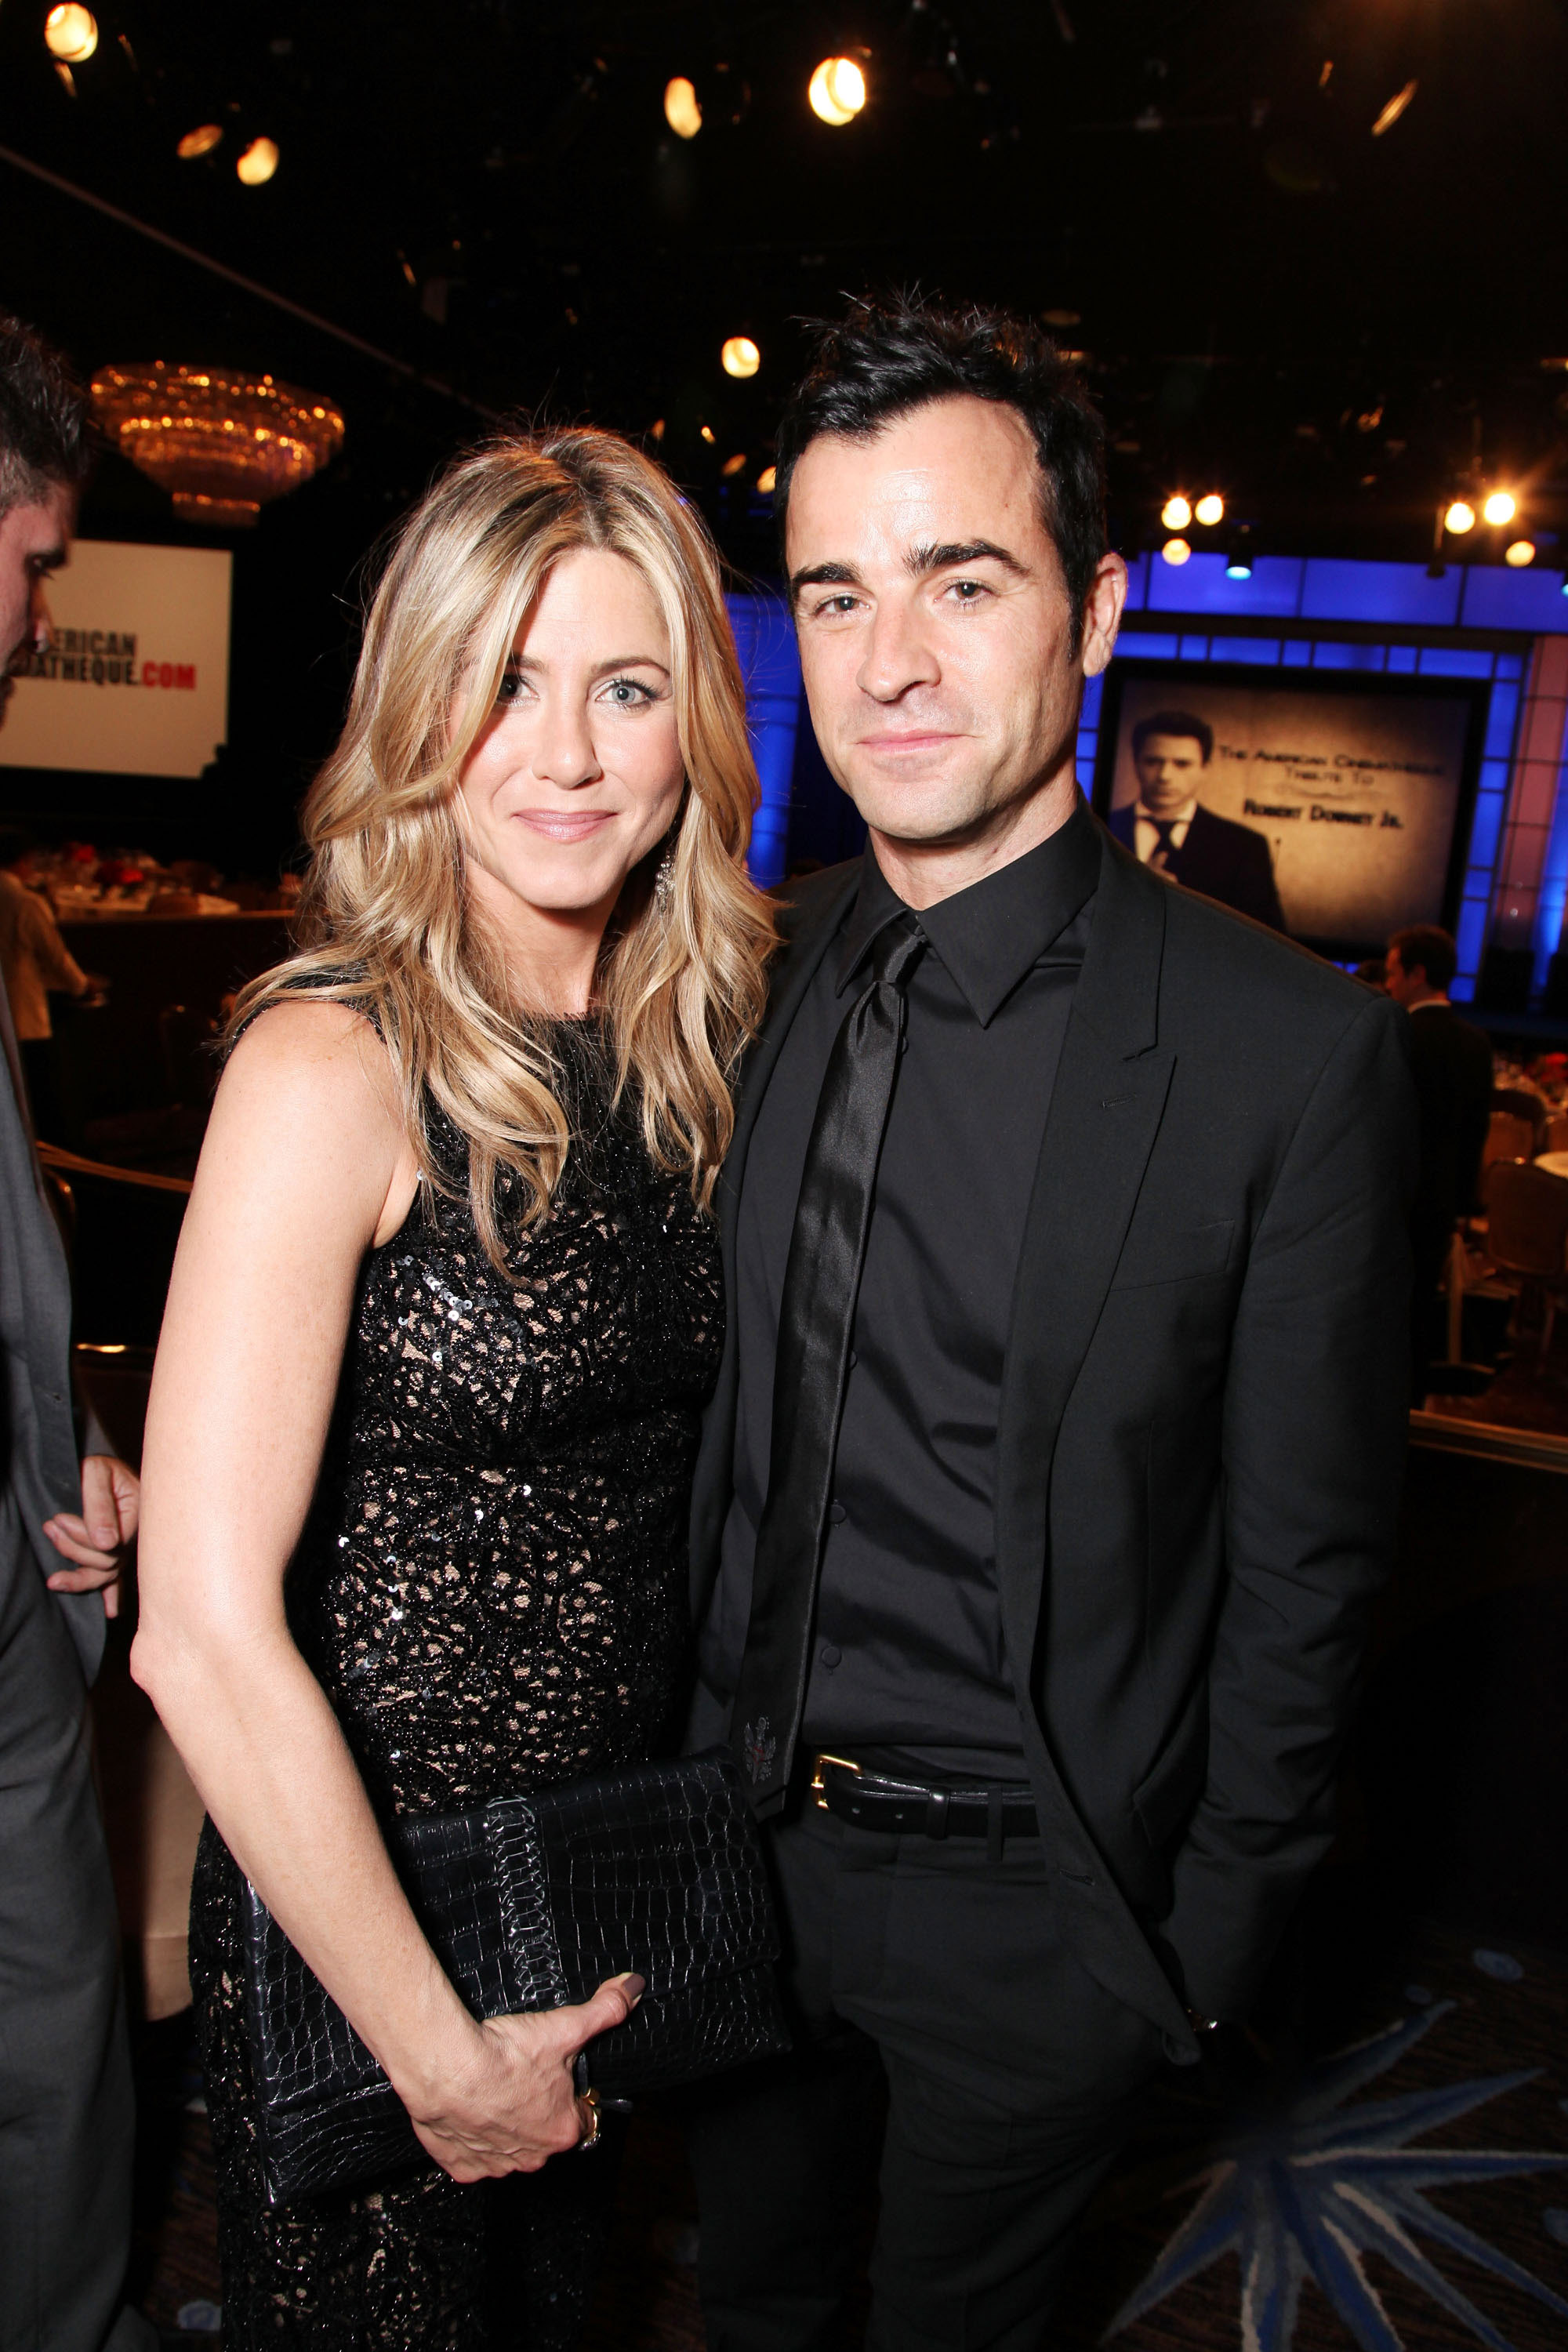 Jennifer Aniston and Justin Theroux made the event a date night.